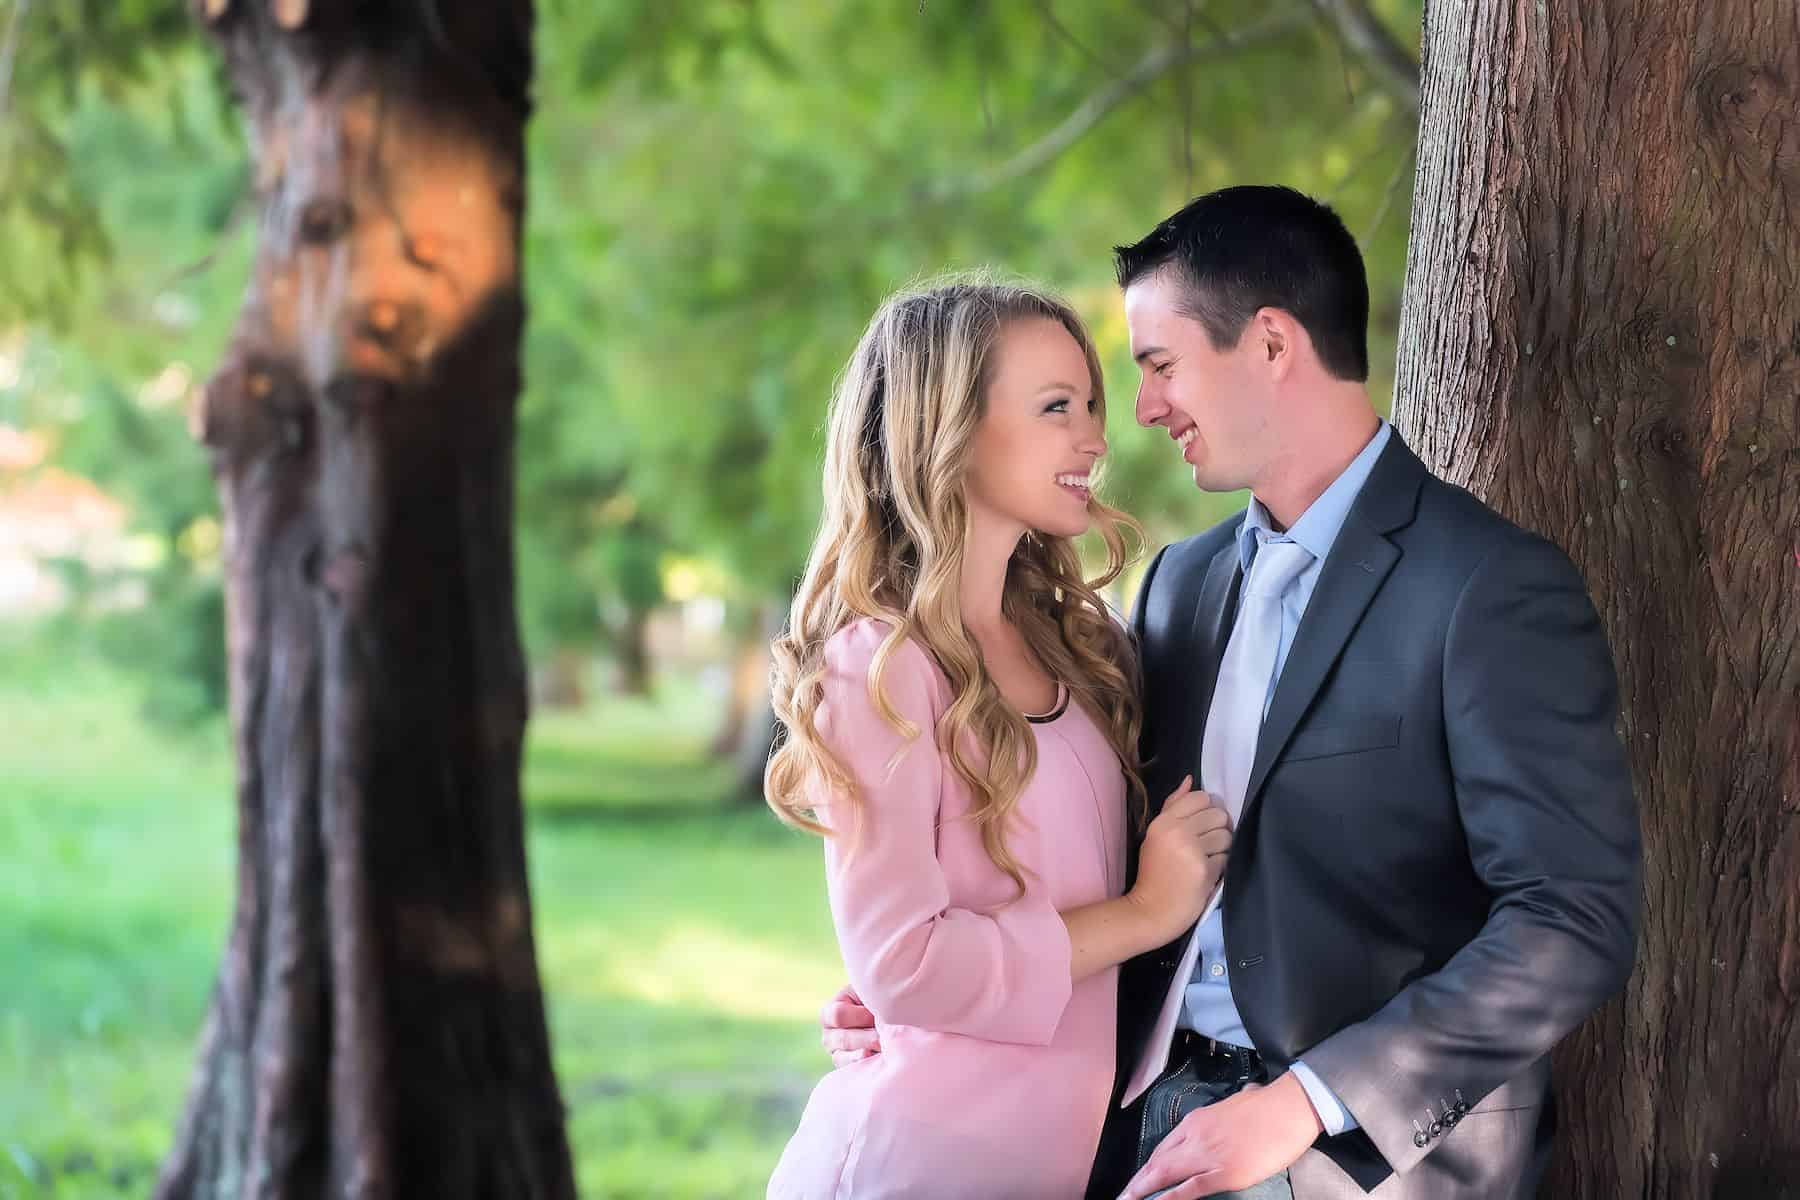 Save the Date photos at a local park